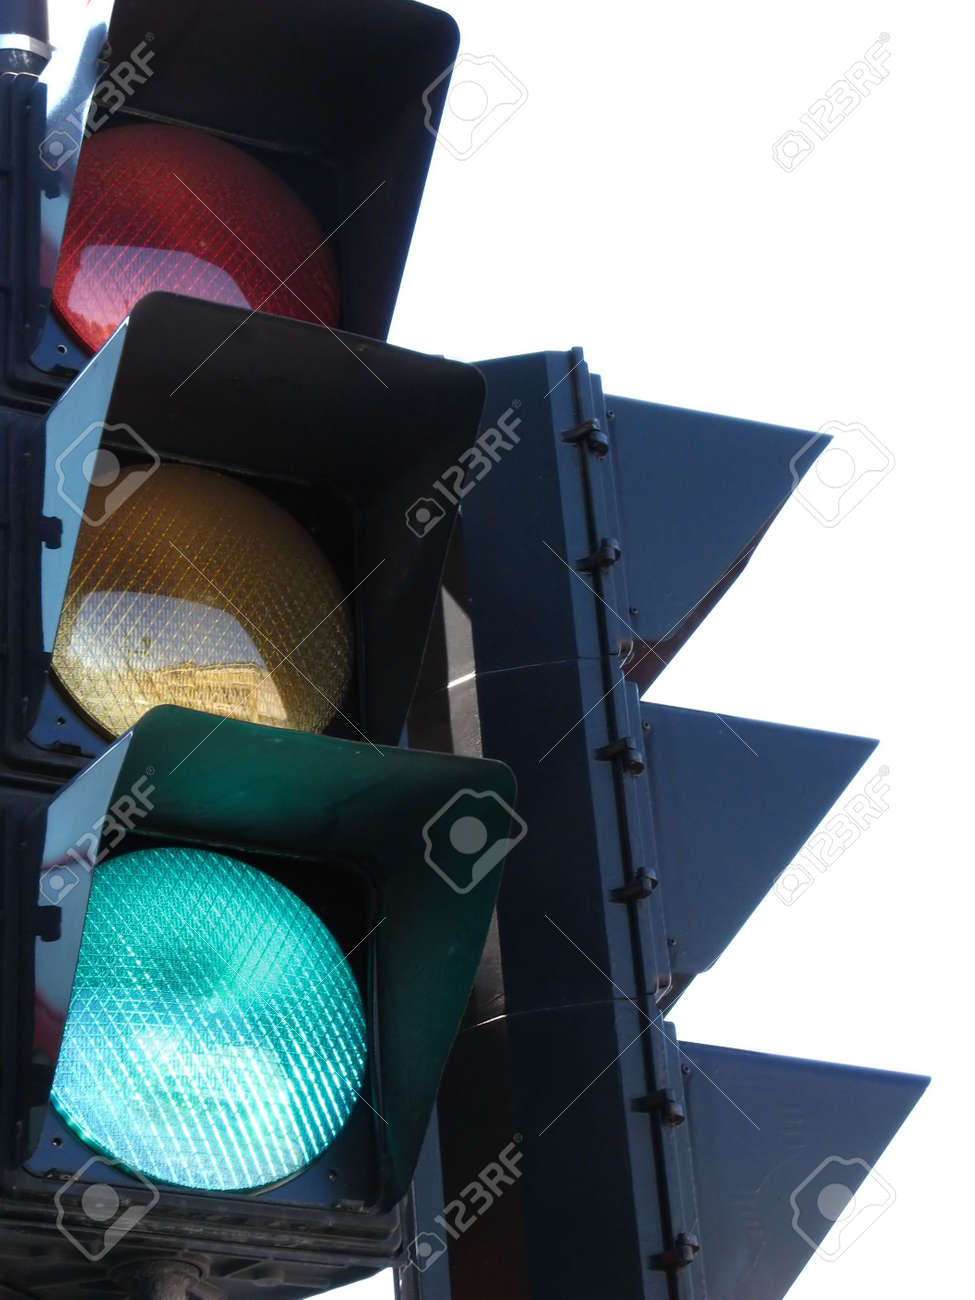 Traffic light in work. Stock Photo - 489043